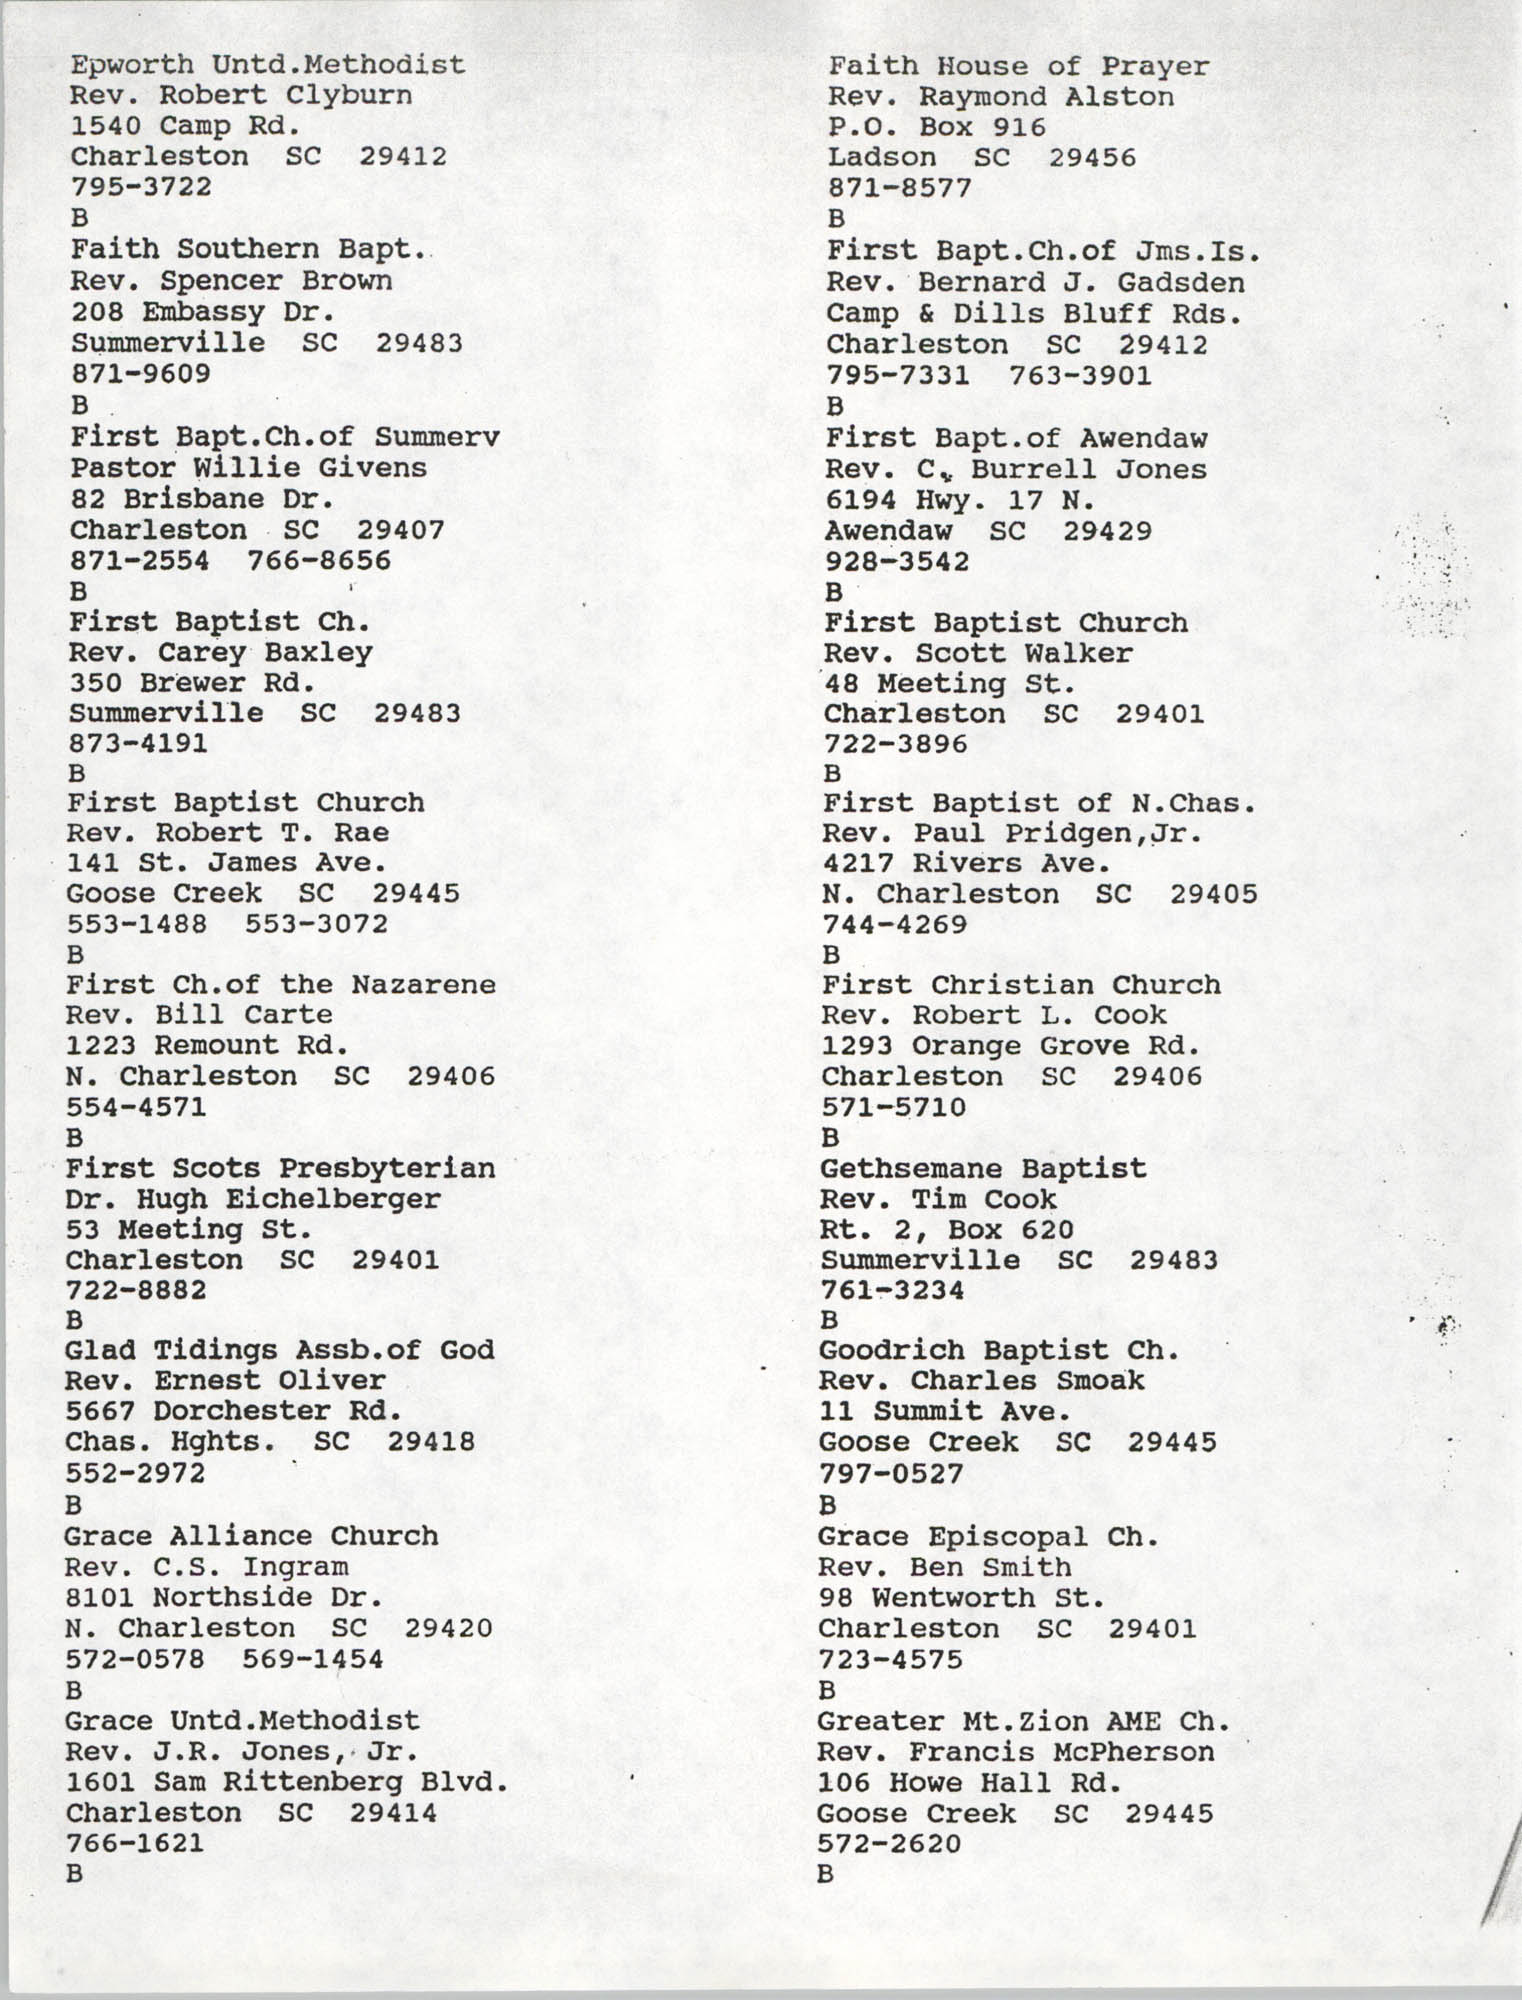 Church Contact List, Charleston Chapter of the NAACP, Page 9